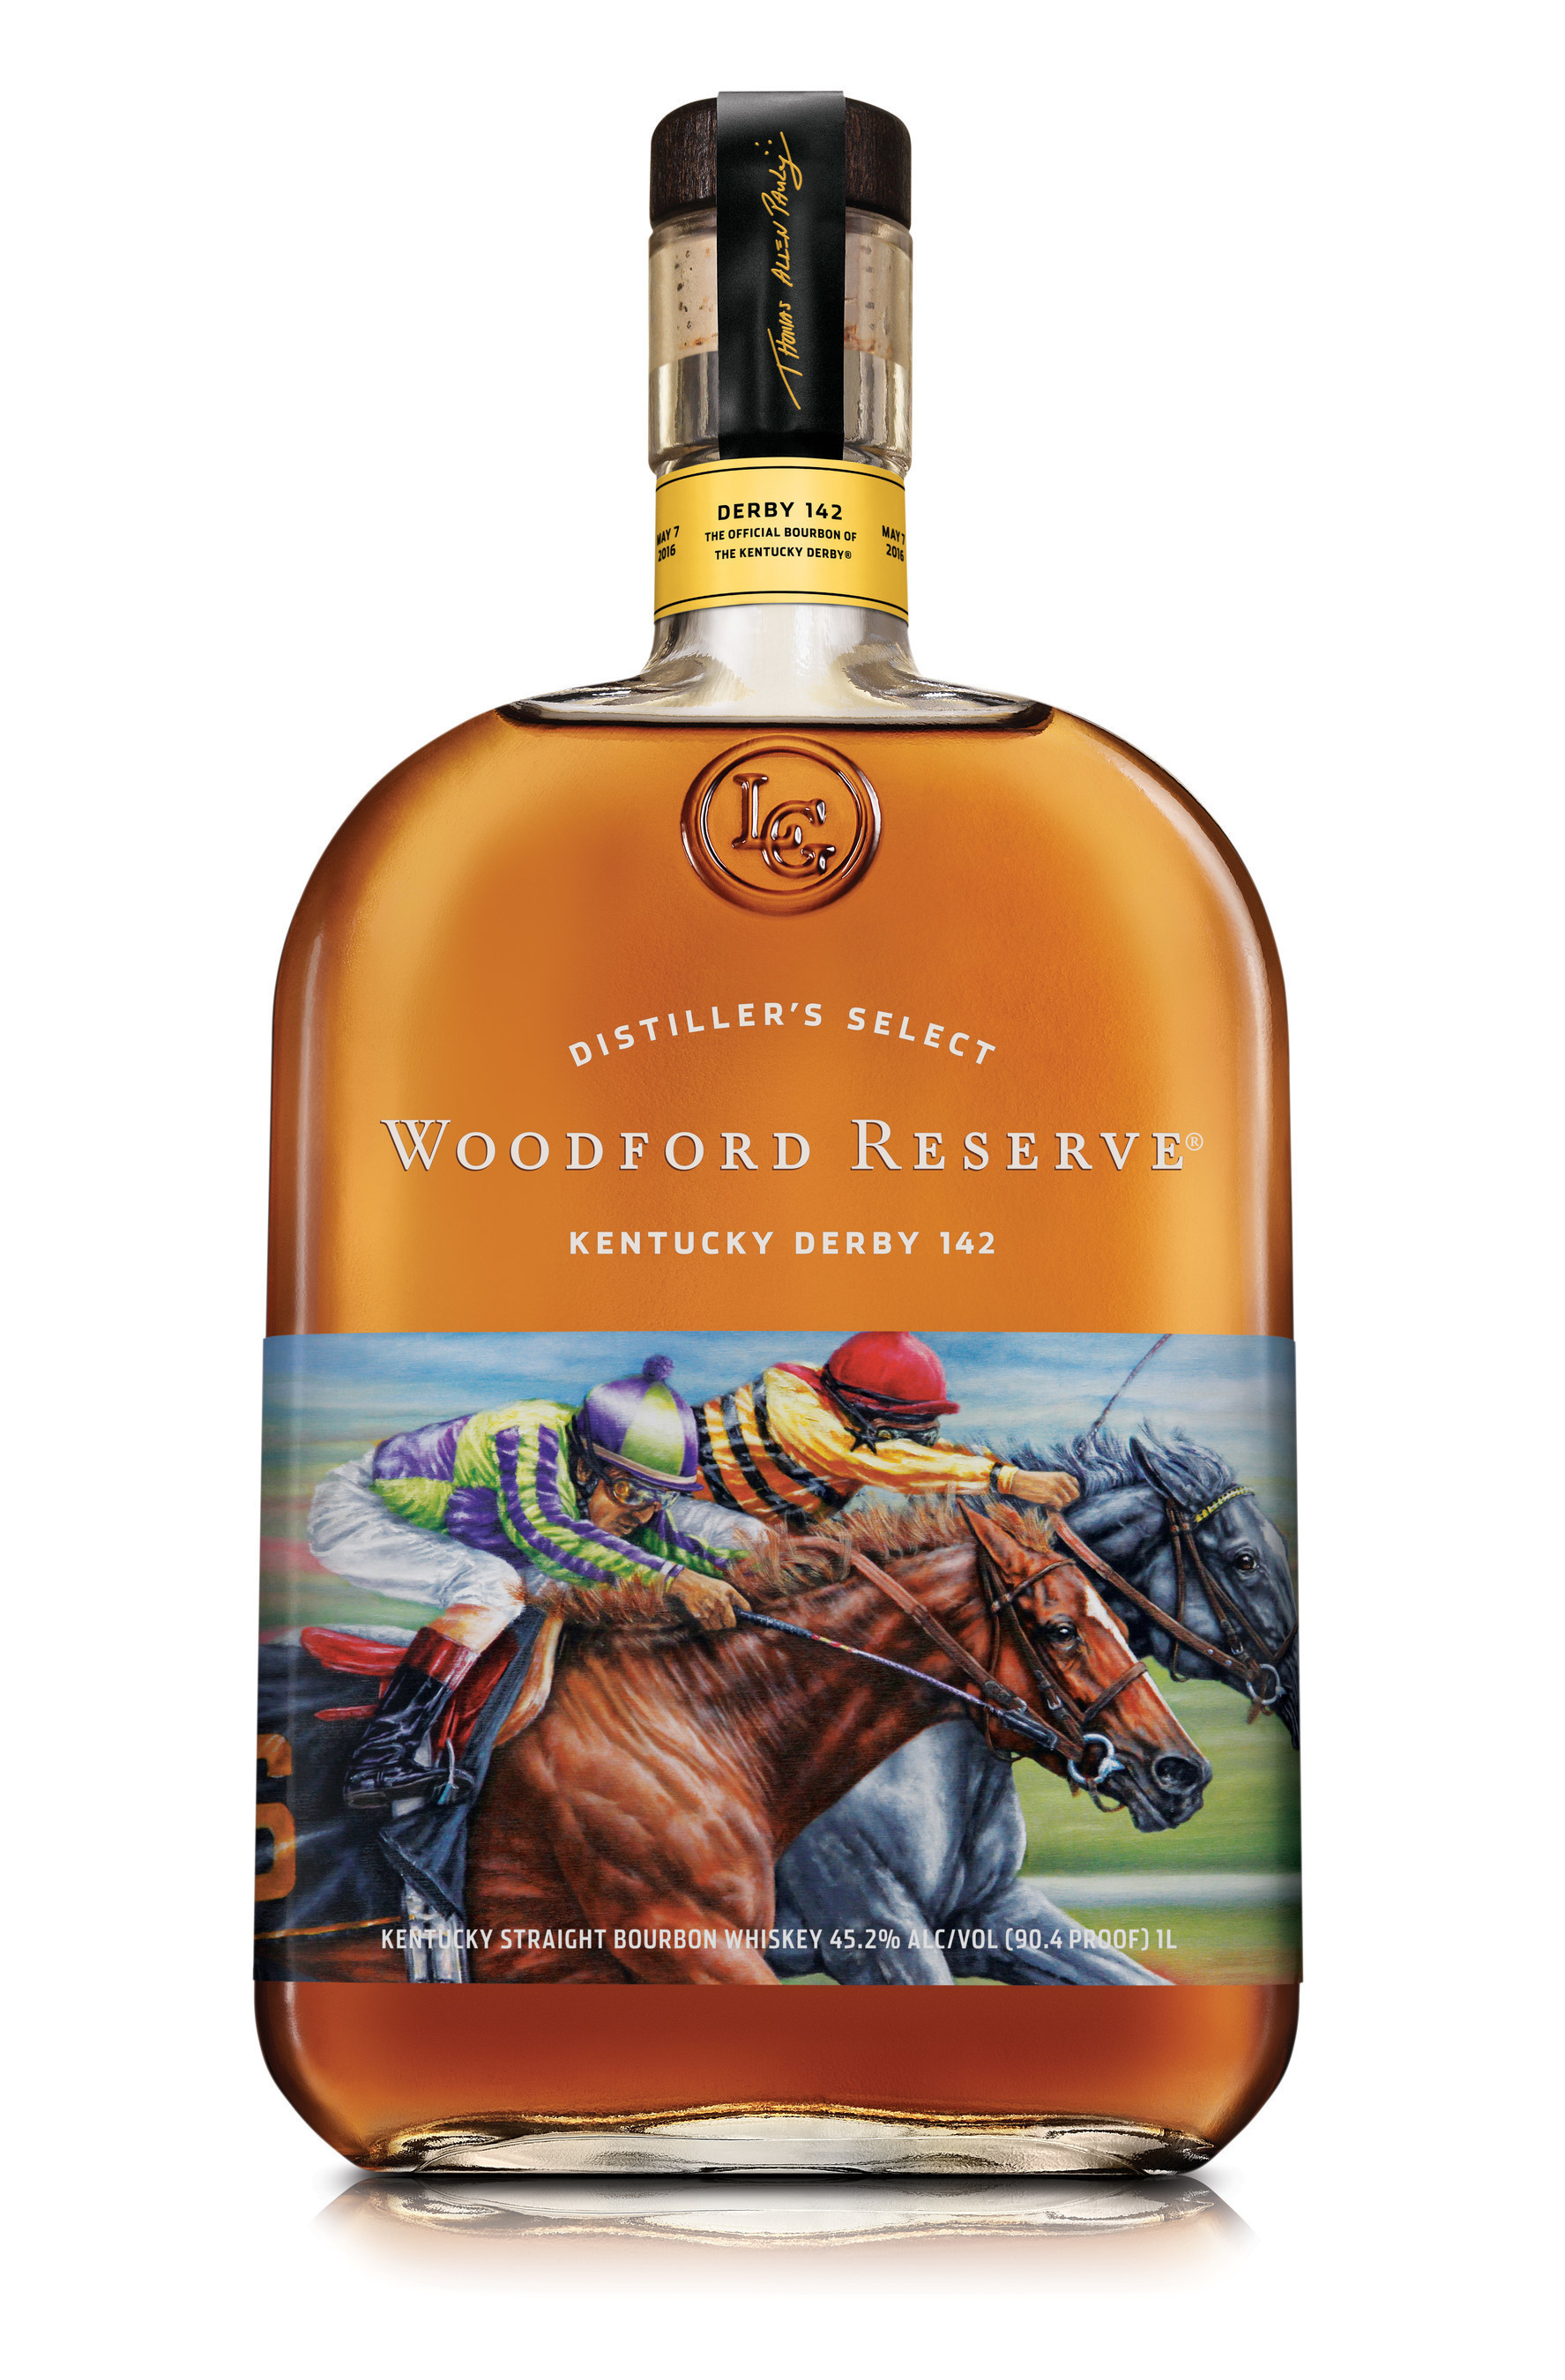 """Woodford Reserve(R), the Official Bourbon of the Kentucky Derby(R), is honoring this year's """"Run for the Roses""""(TM) with the release of its 2016 Kentucky Derby commemorative bottle.  This year's limited-edition Woodford Reserve Kentucky Derby bottle features artwork from award-winning equine artist Thomas Allen Pauly."""